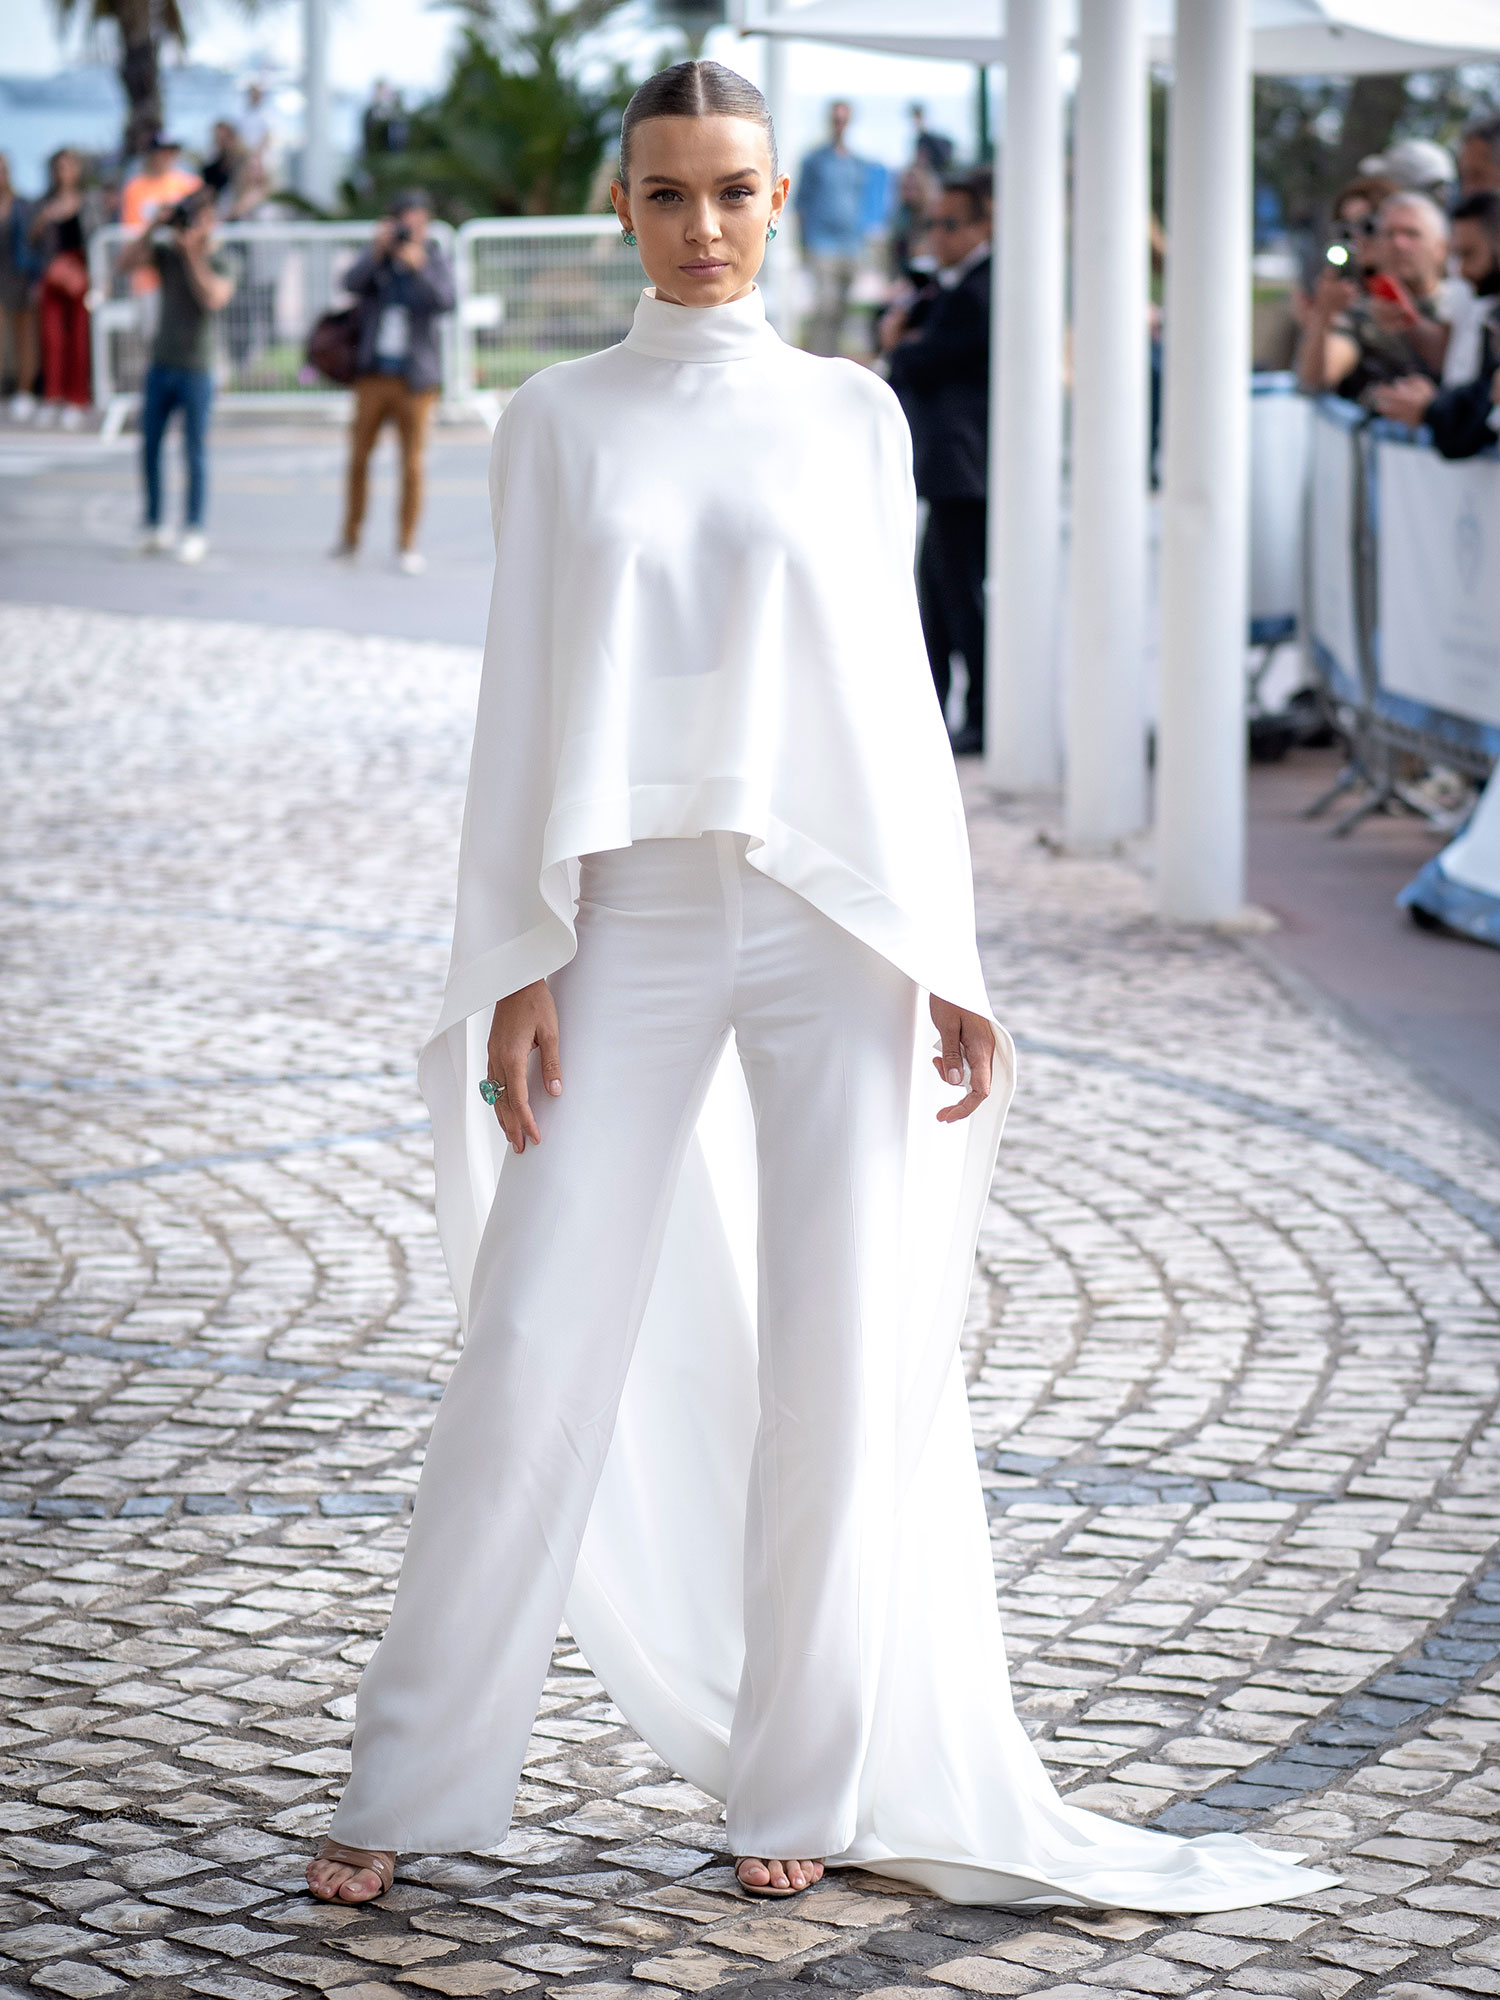 Josephine Skriver Memorial Day White - Ideal for chilly summer evening events, this pants-sweater combo seen on the blonde beauty May 22, 2019, is comfy and cute.